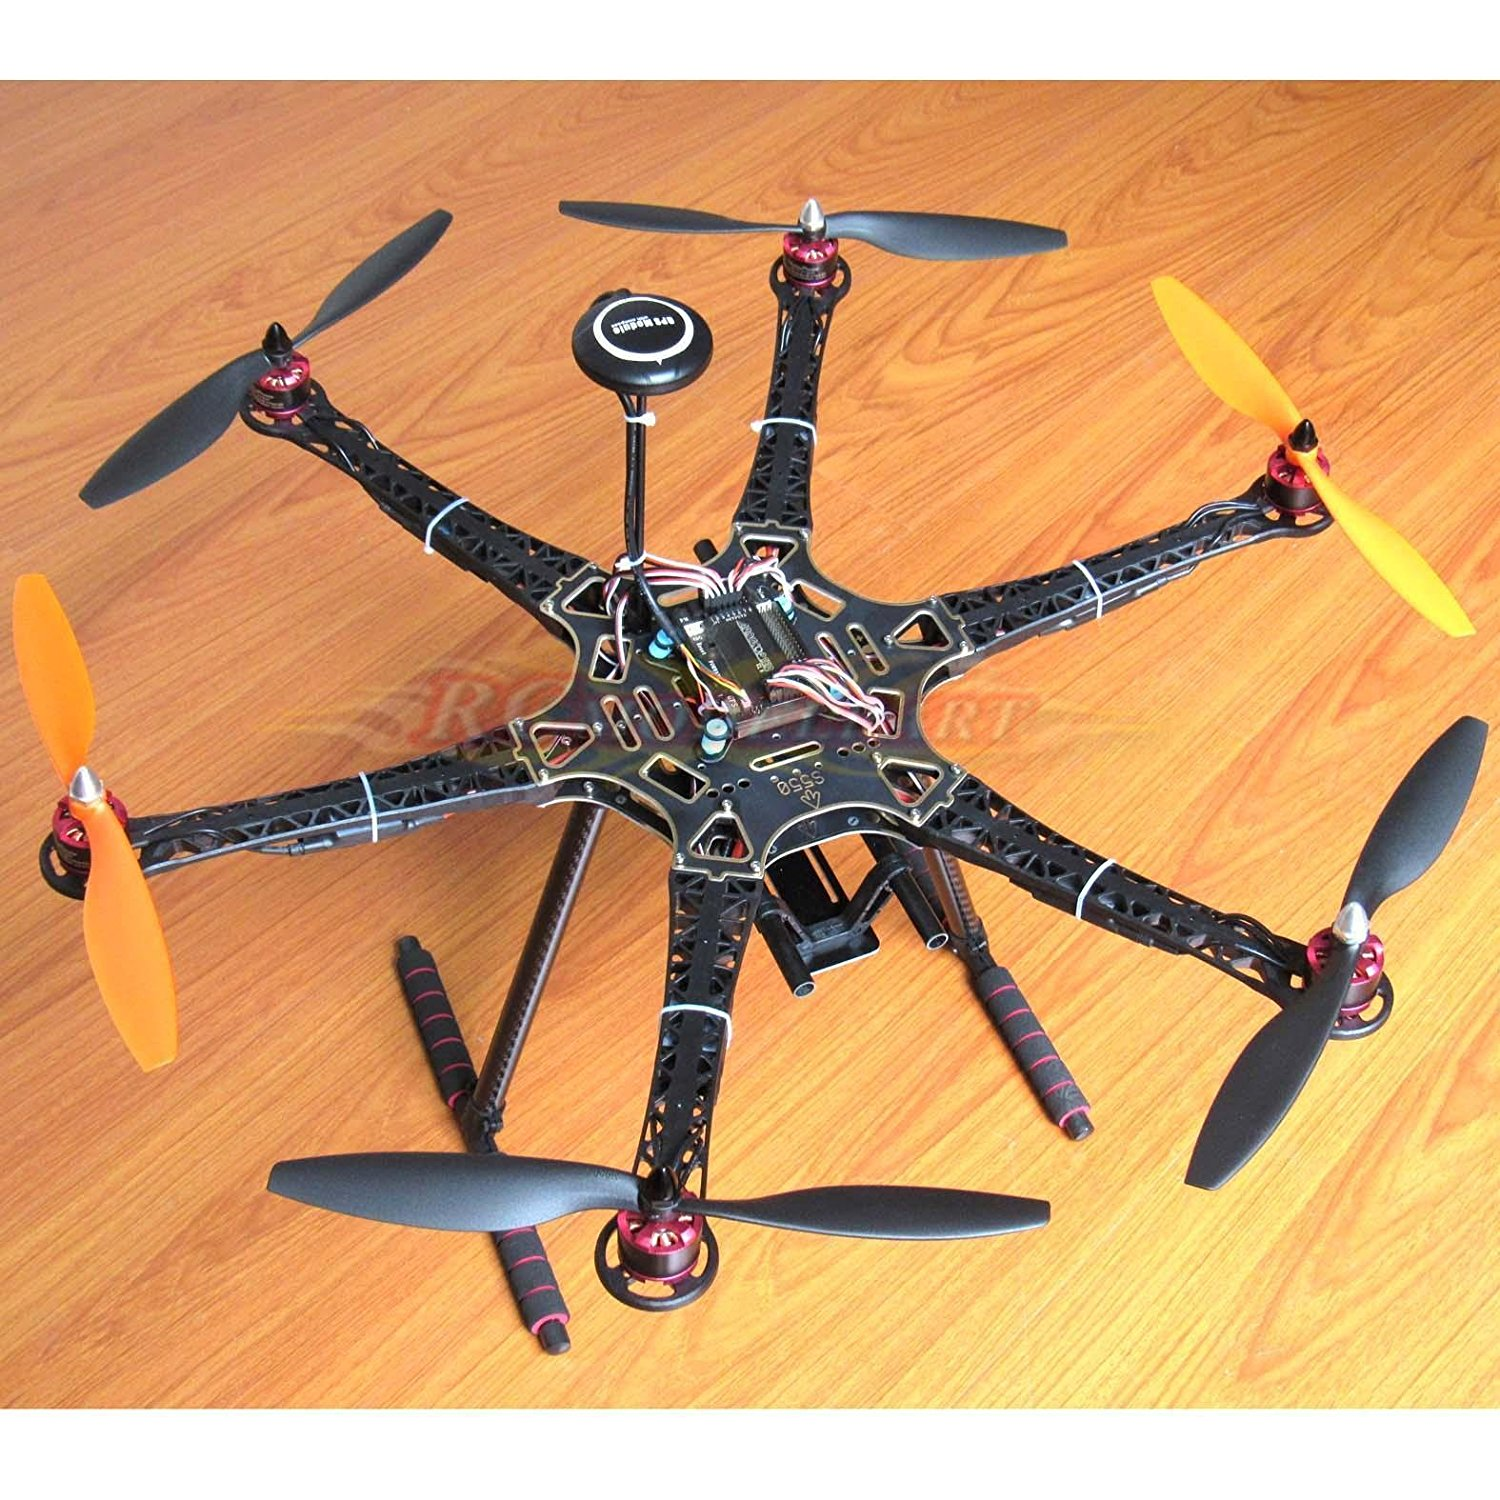 Hexacopter Frame